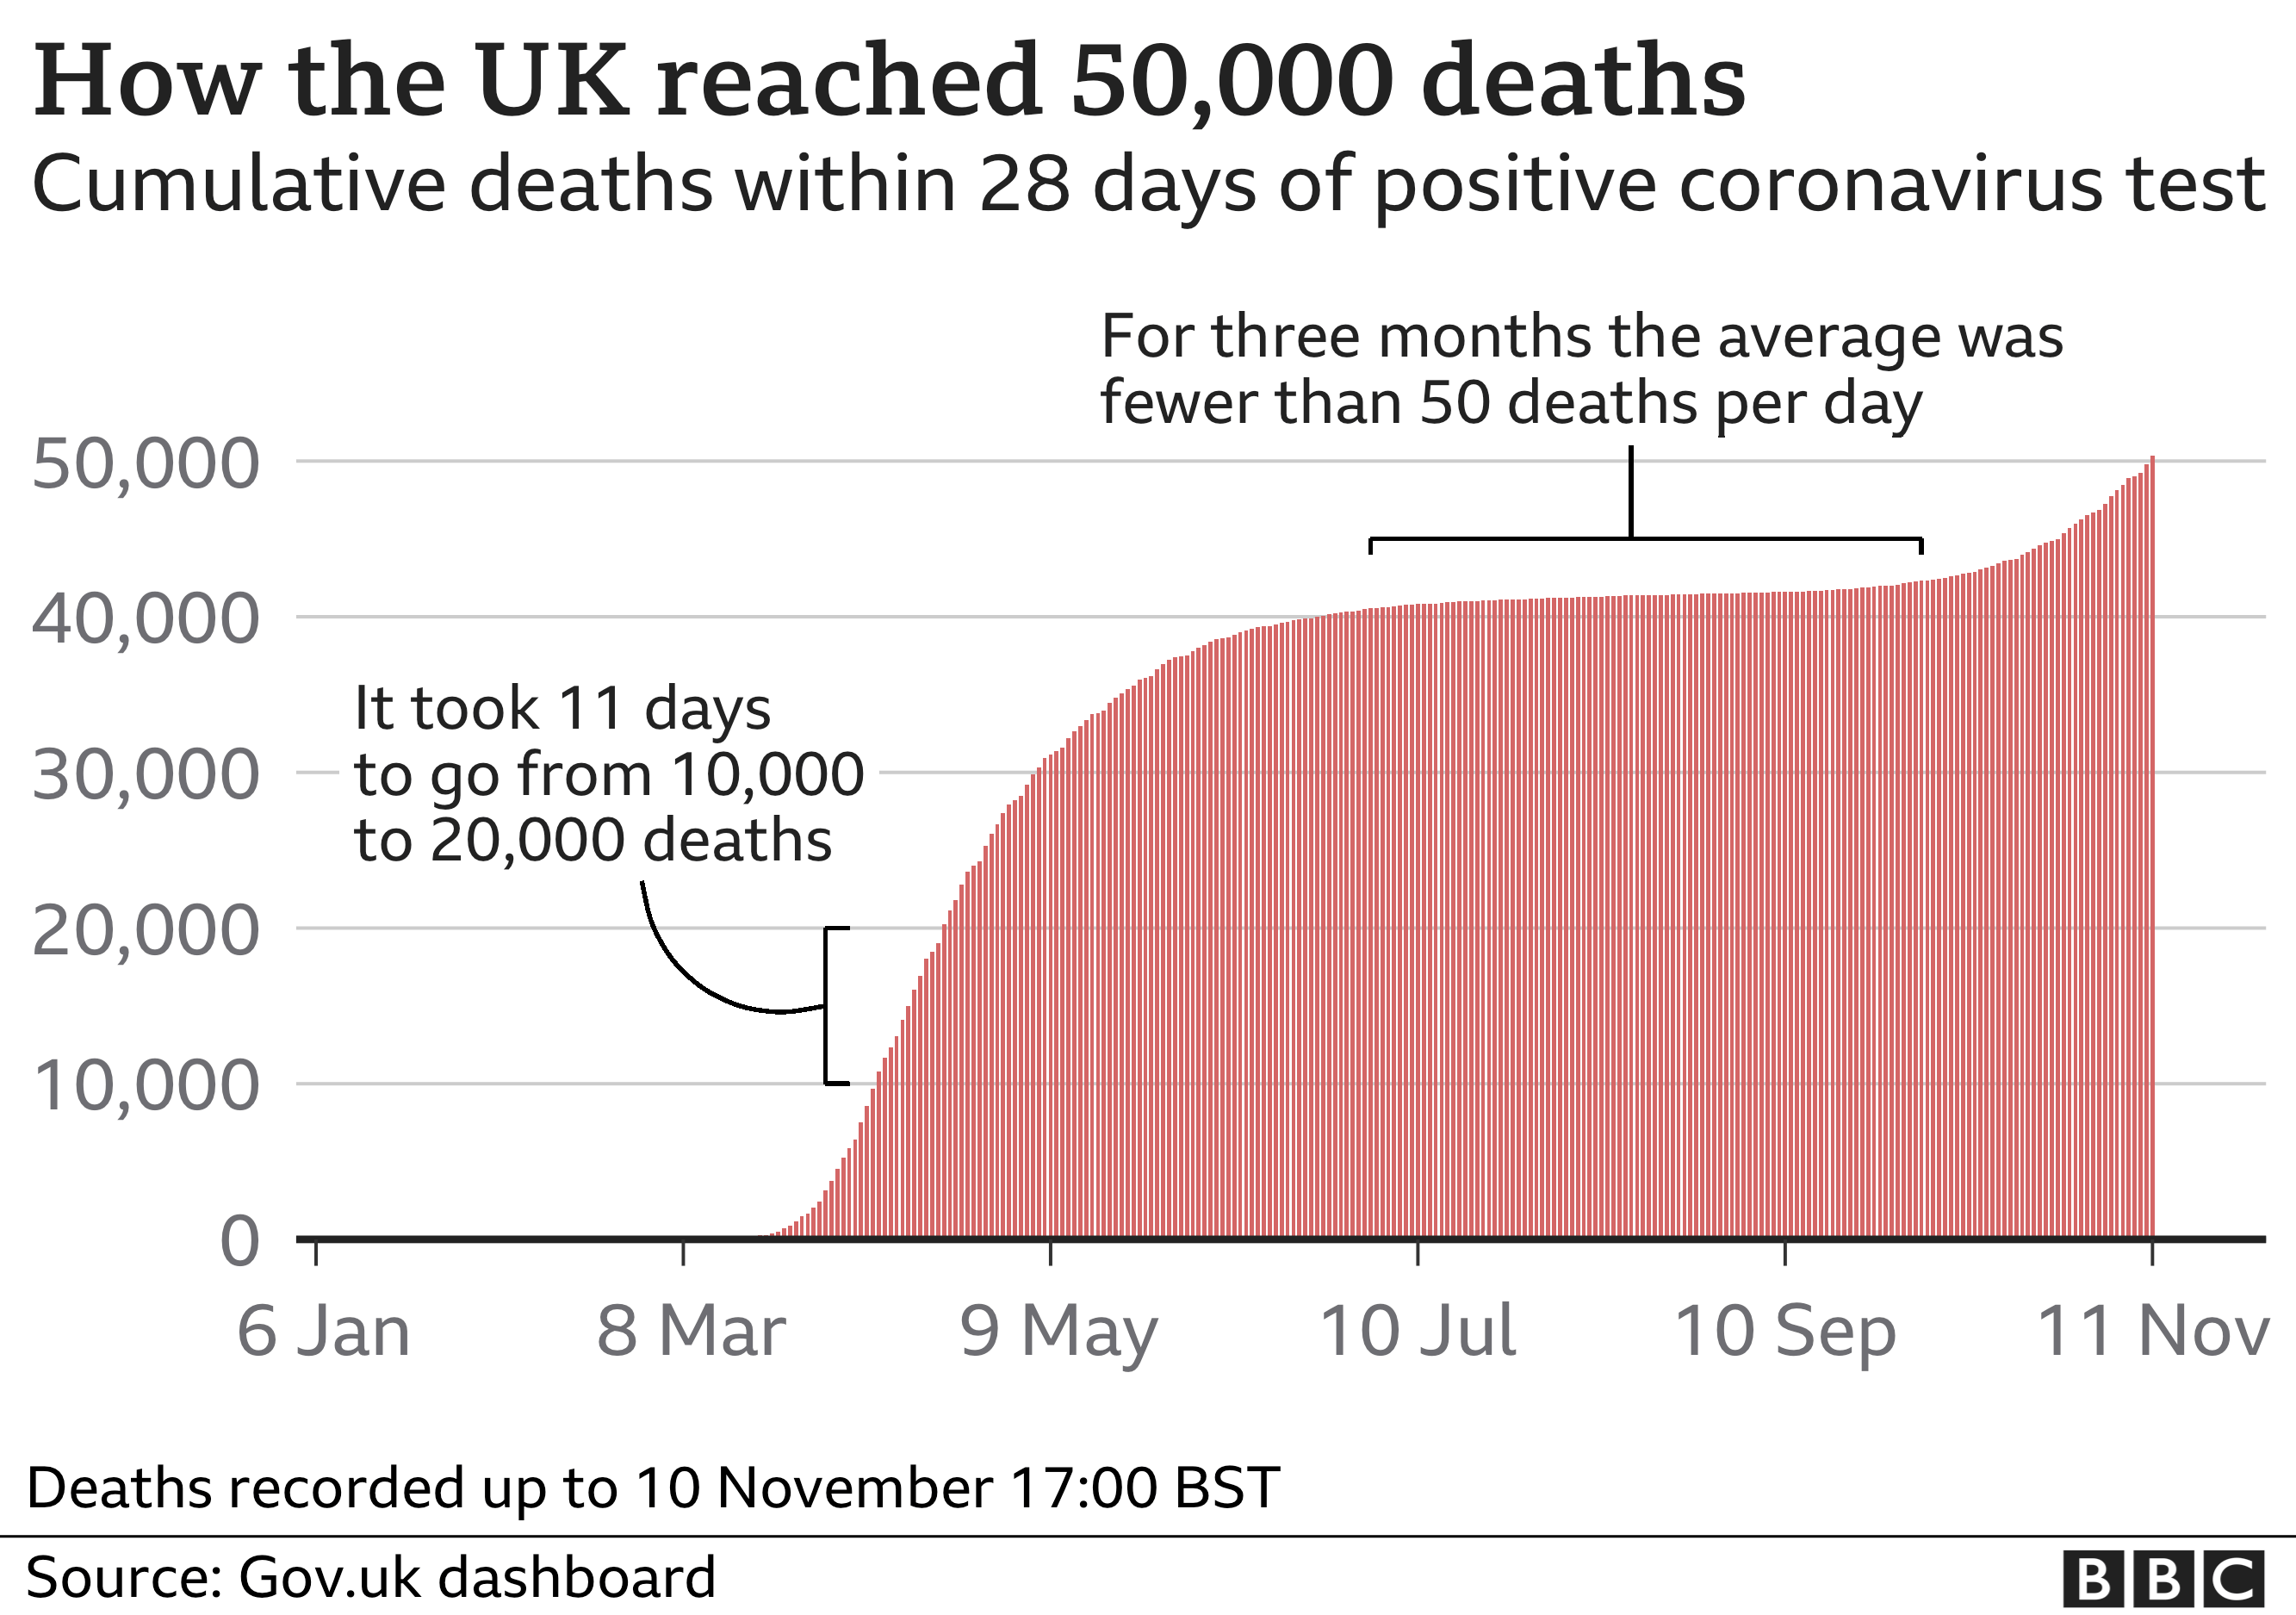 Graph showing cumulative daily deaths from coronavirus in the UK